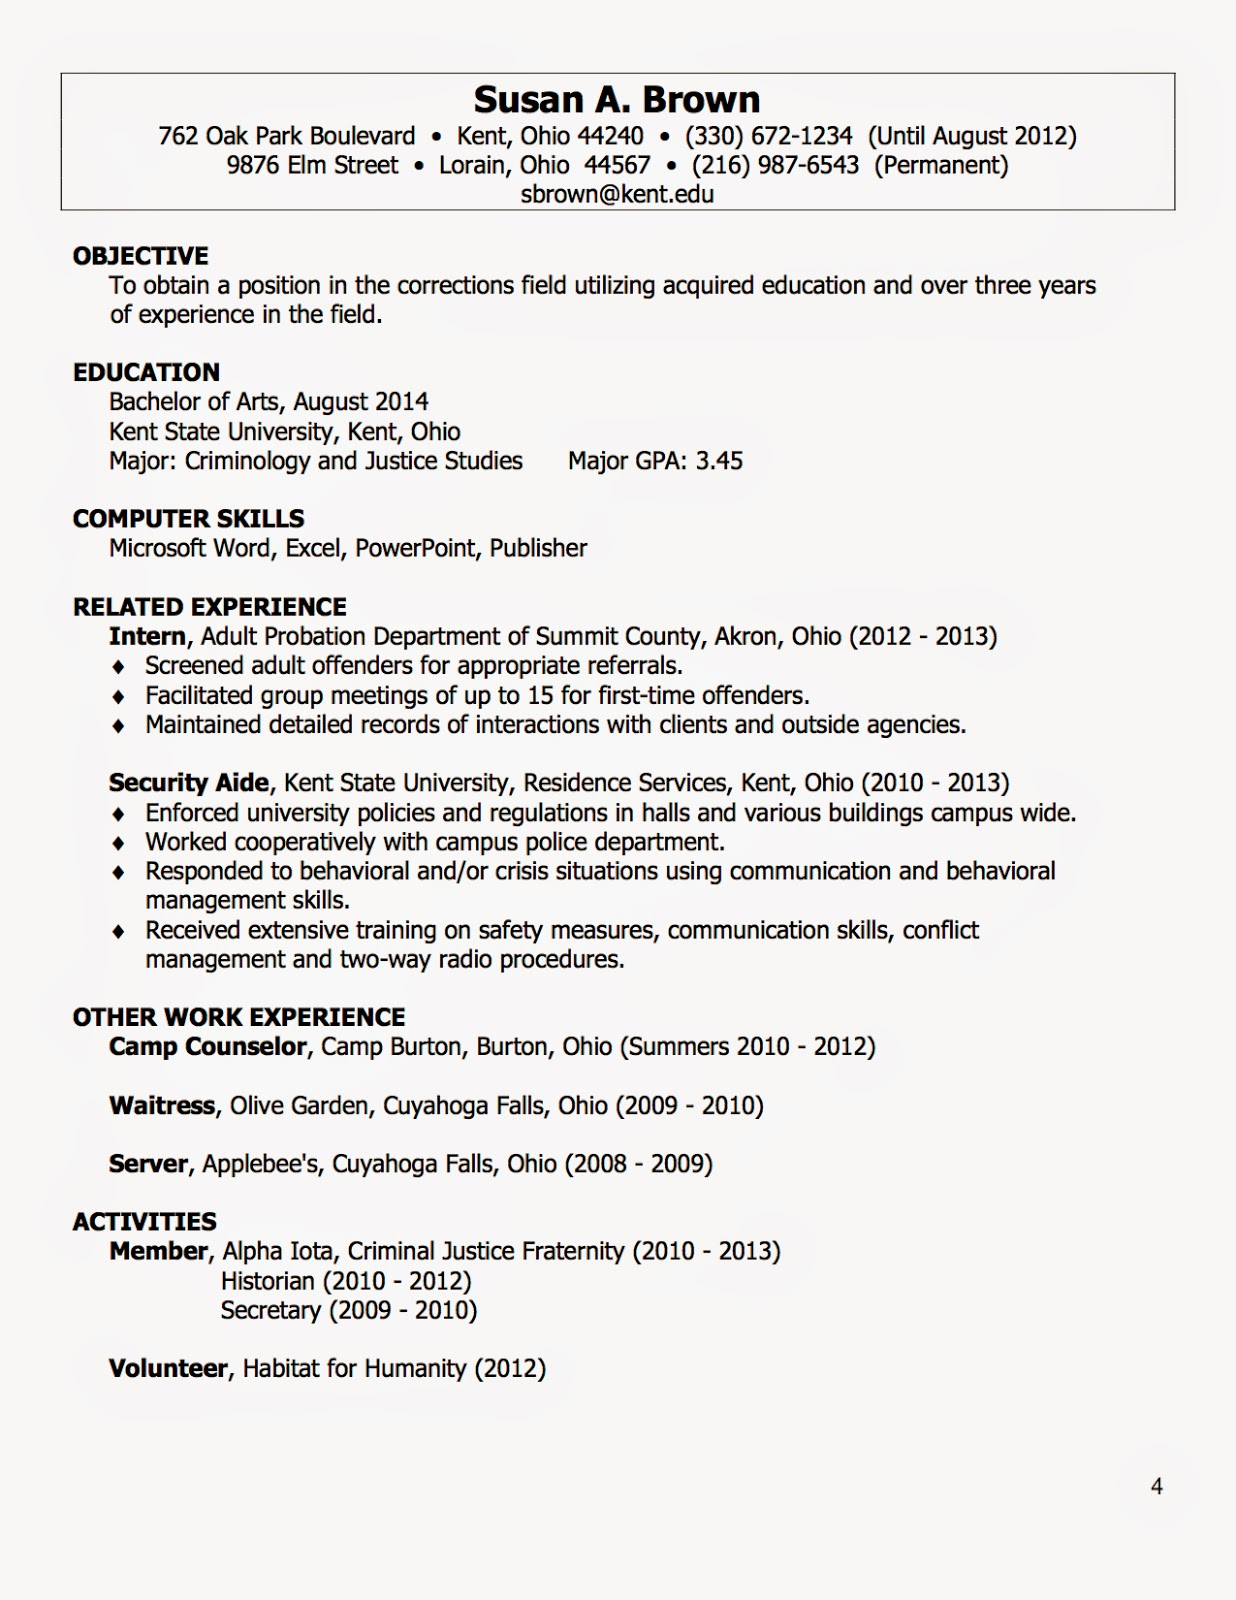 Harriciones! : Creating Your Resume!